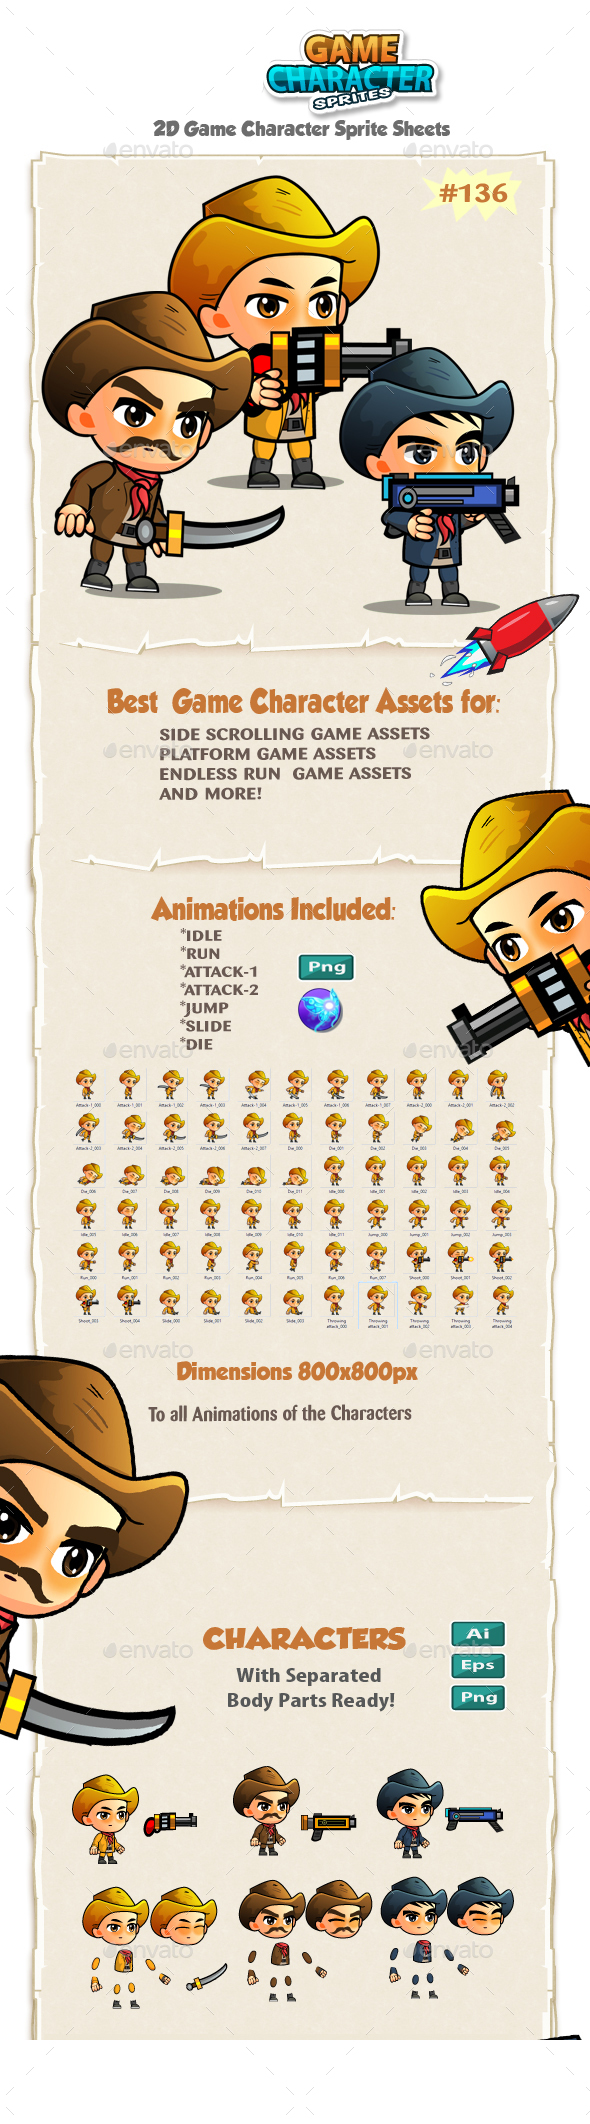 Cowboys 2D Game Character Sprites 137 - Sprites Game Assets